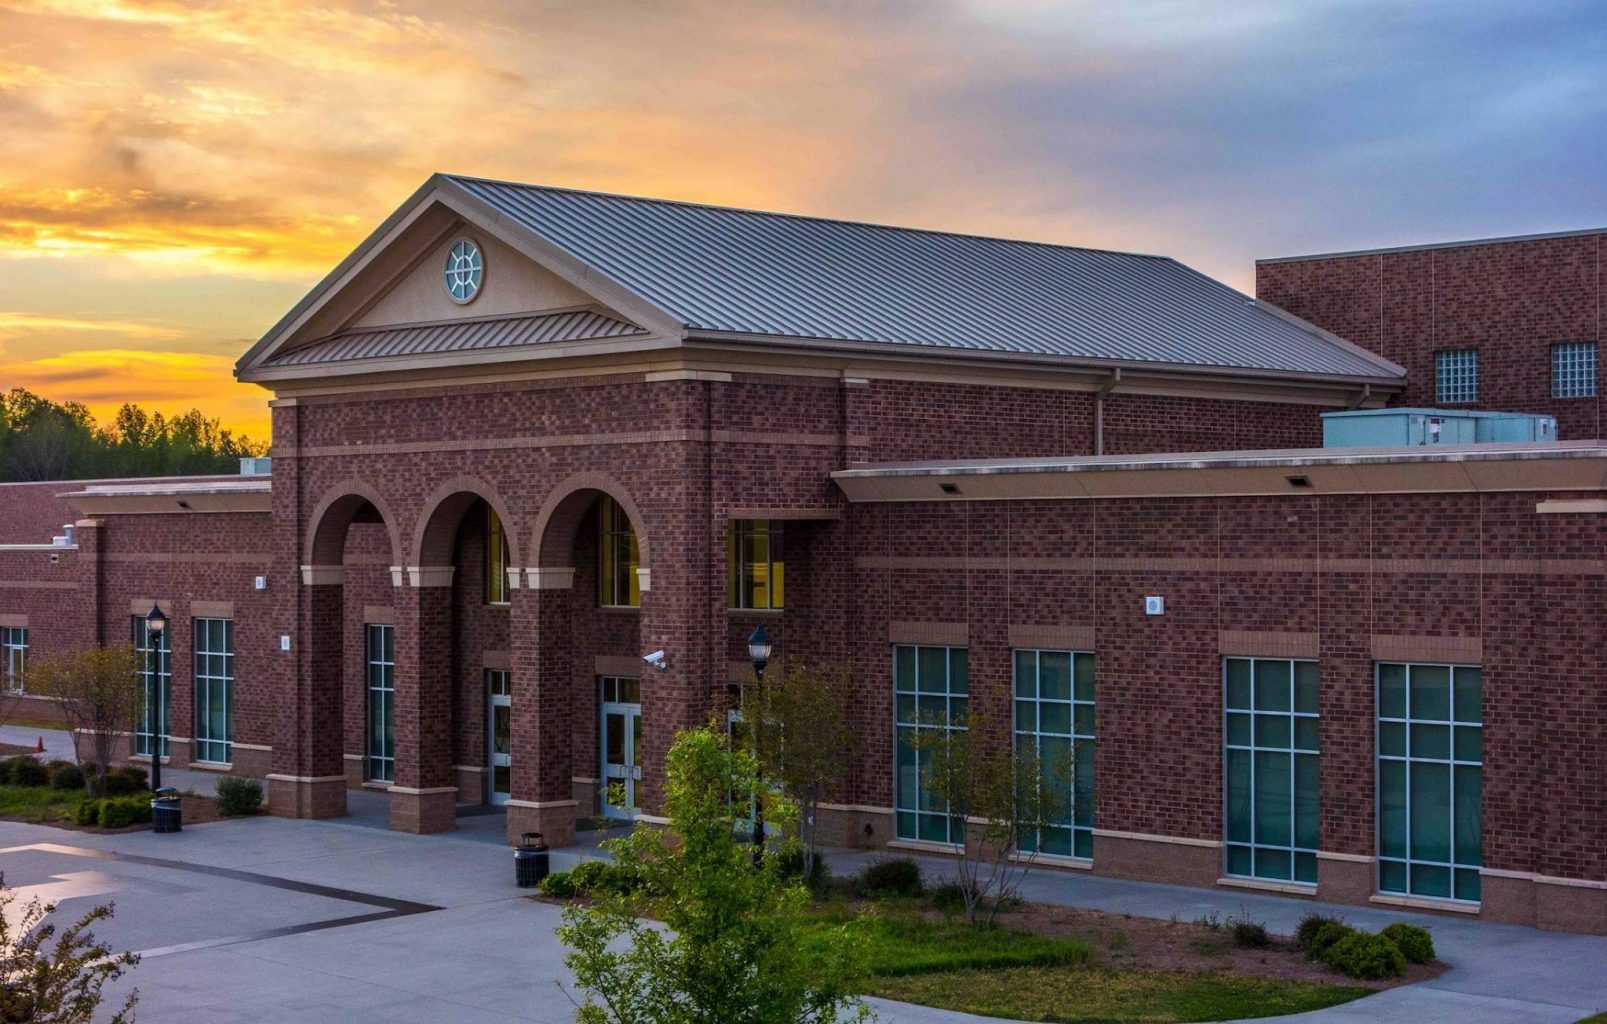 Address School Safety Vulnerabilities in Iowa City Area With Film Retrofit - School Safety and Security Window Films in the Cedar Rapids and Iowa City Area